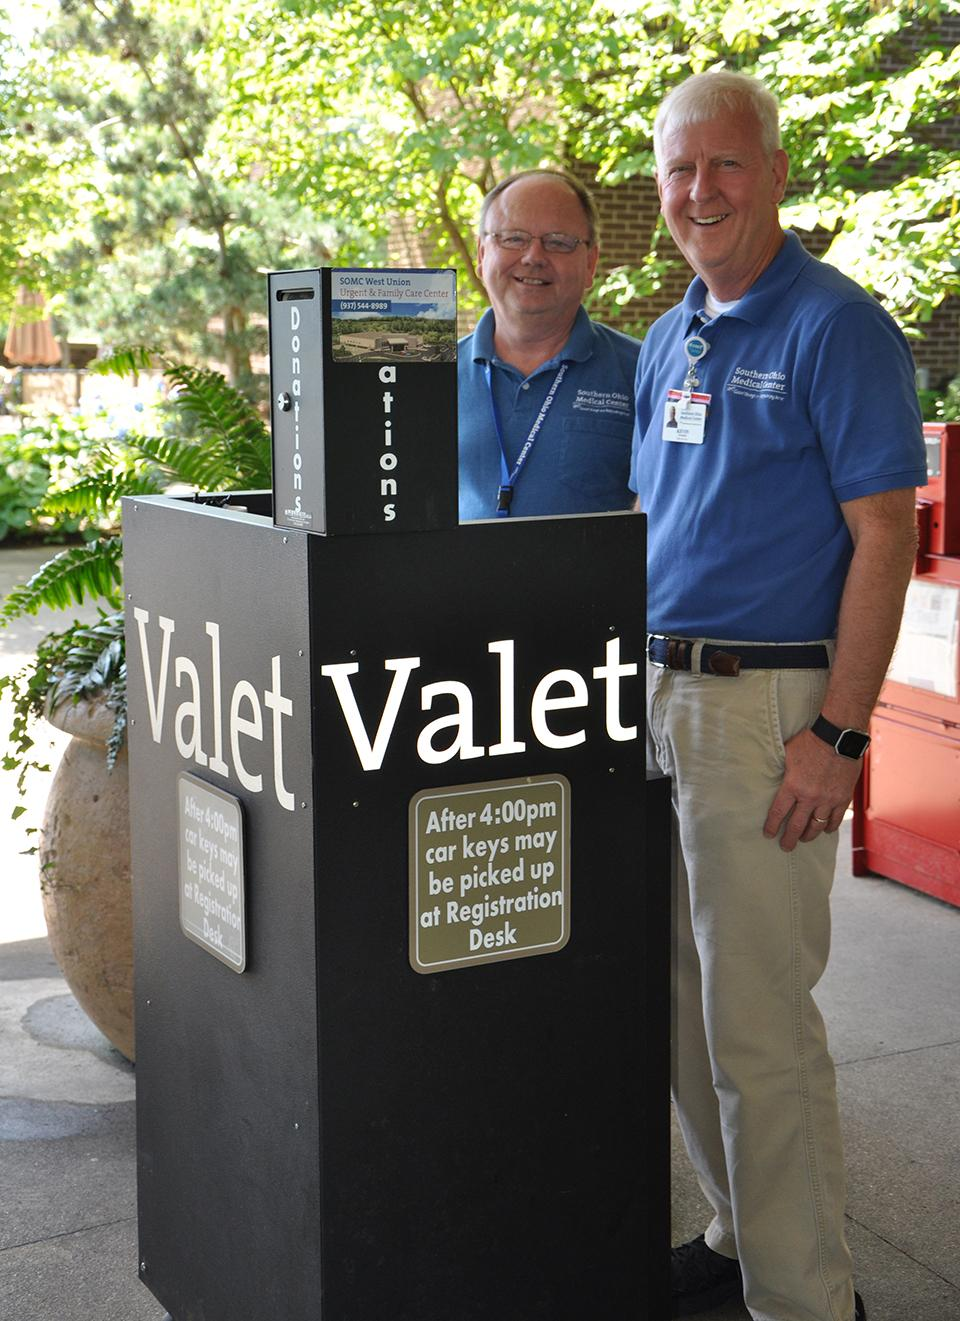 Welcome to SOMC, these guys offer a smile, and free Valet service to our patients.